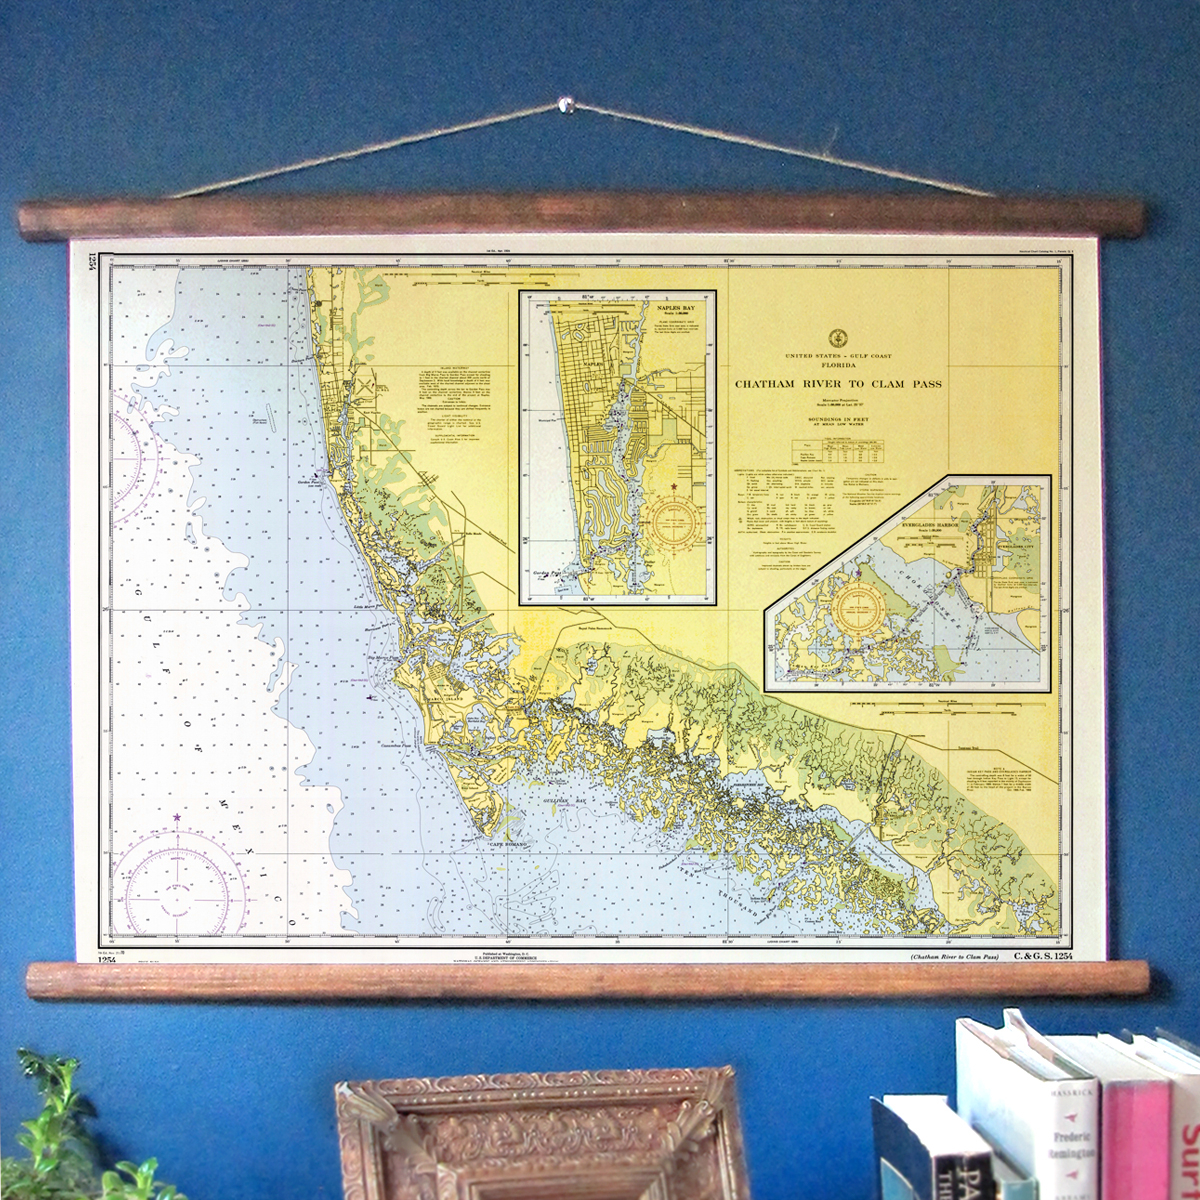 Naples Marco Island Fl 1970 Nautical Chart Wall Scroll